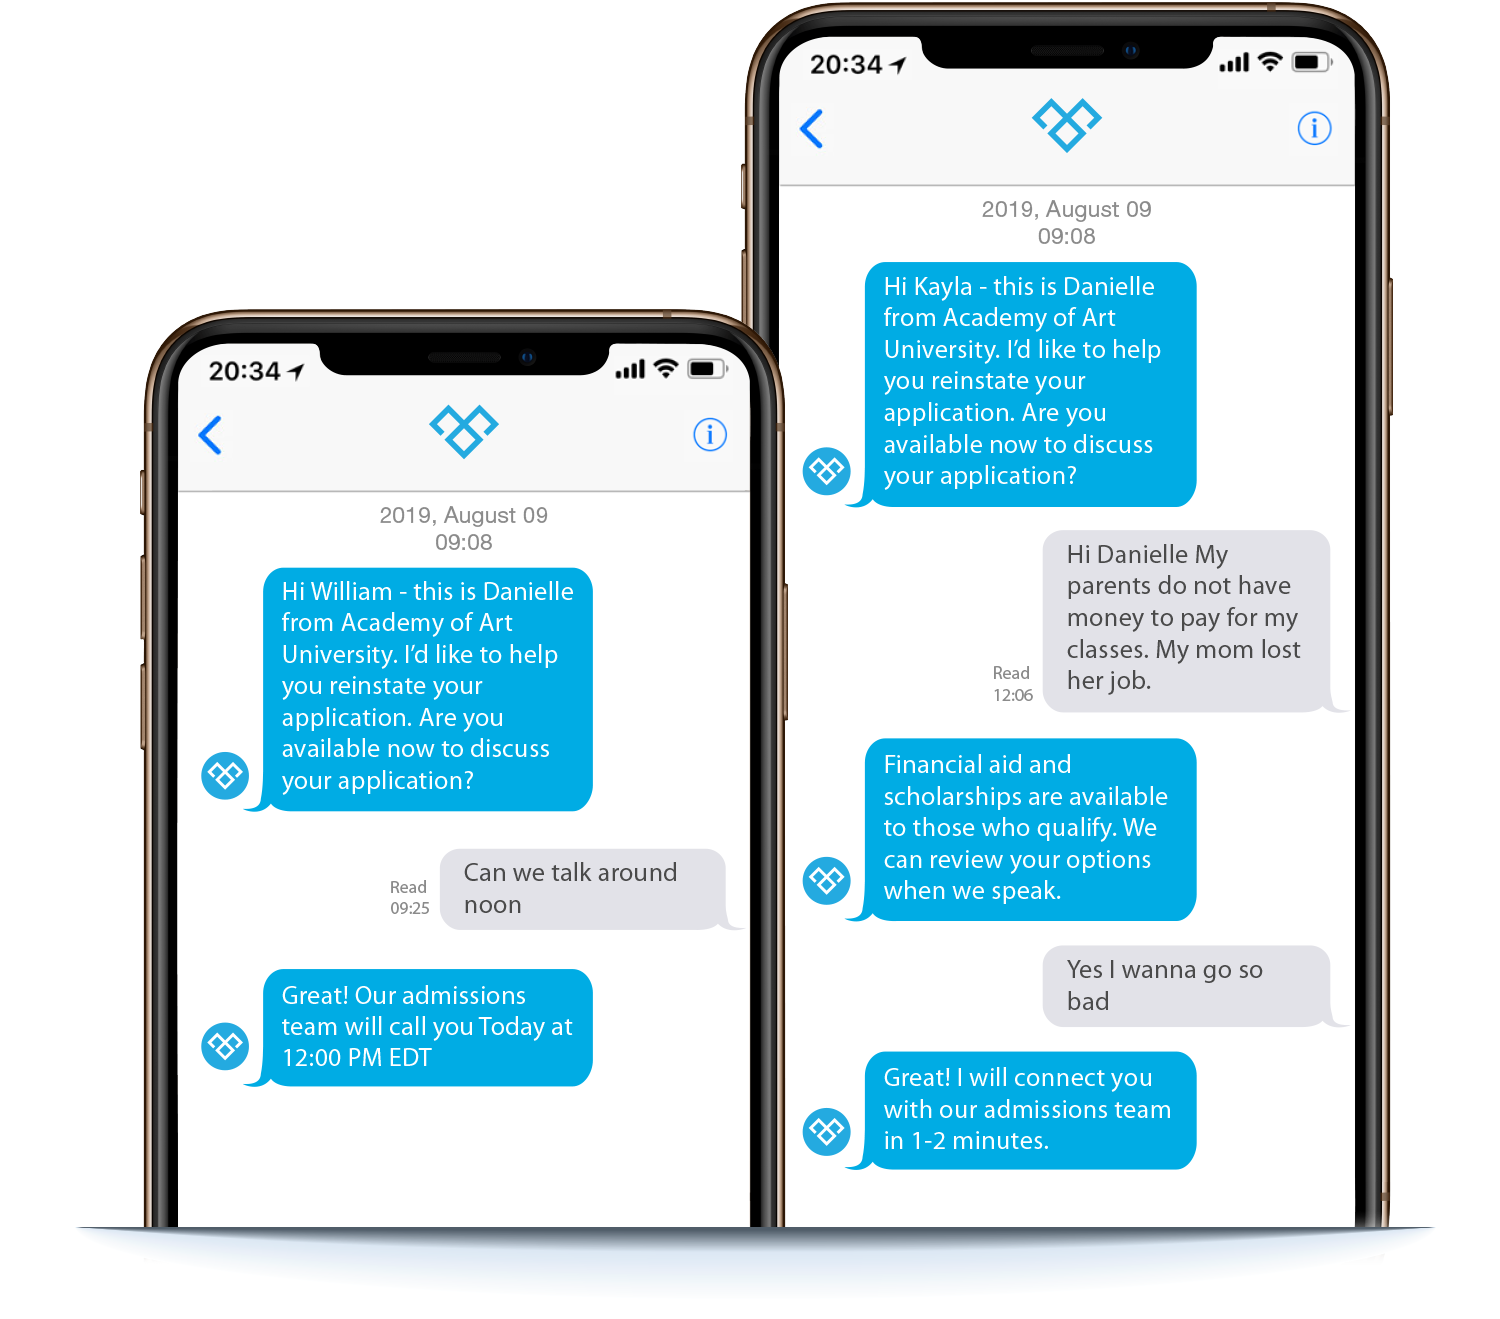 Image showing actual lead generation using Meera Conversation AI on mobile phone